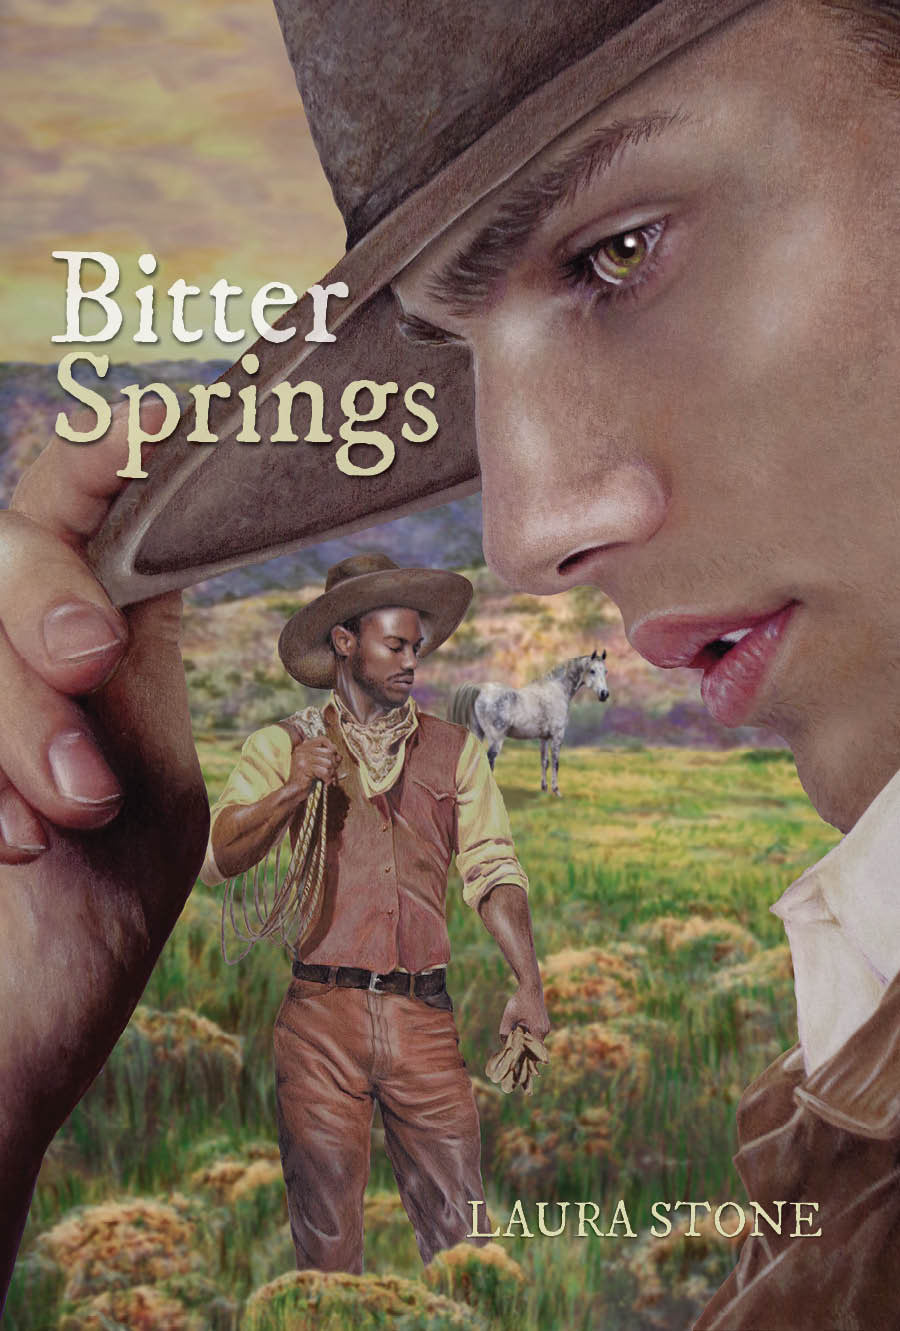 Bitter Springs by Laura Stone (print edition)